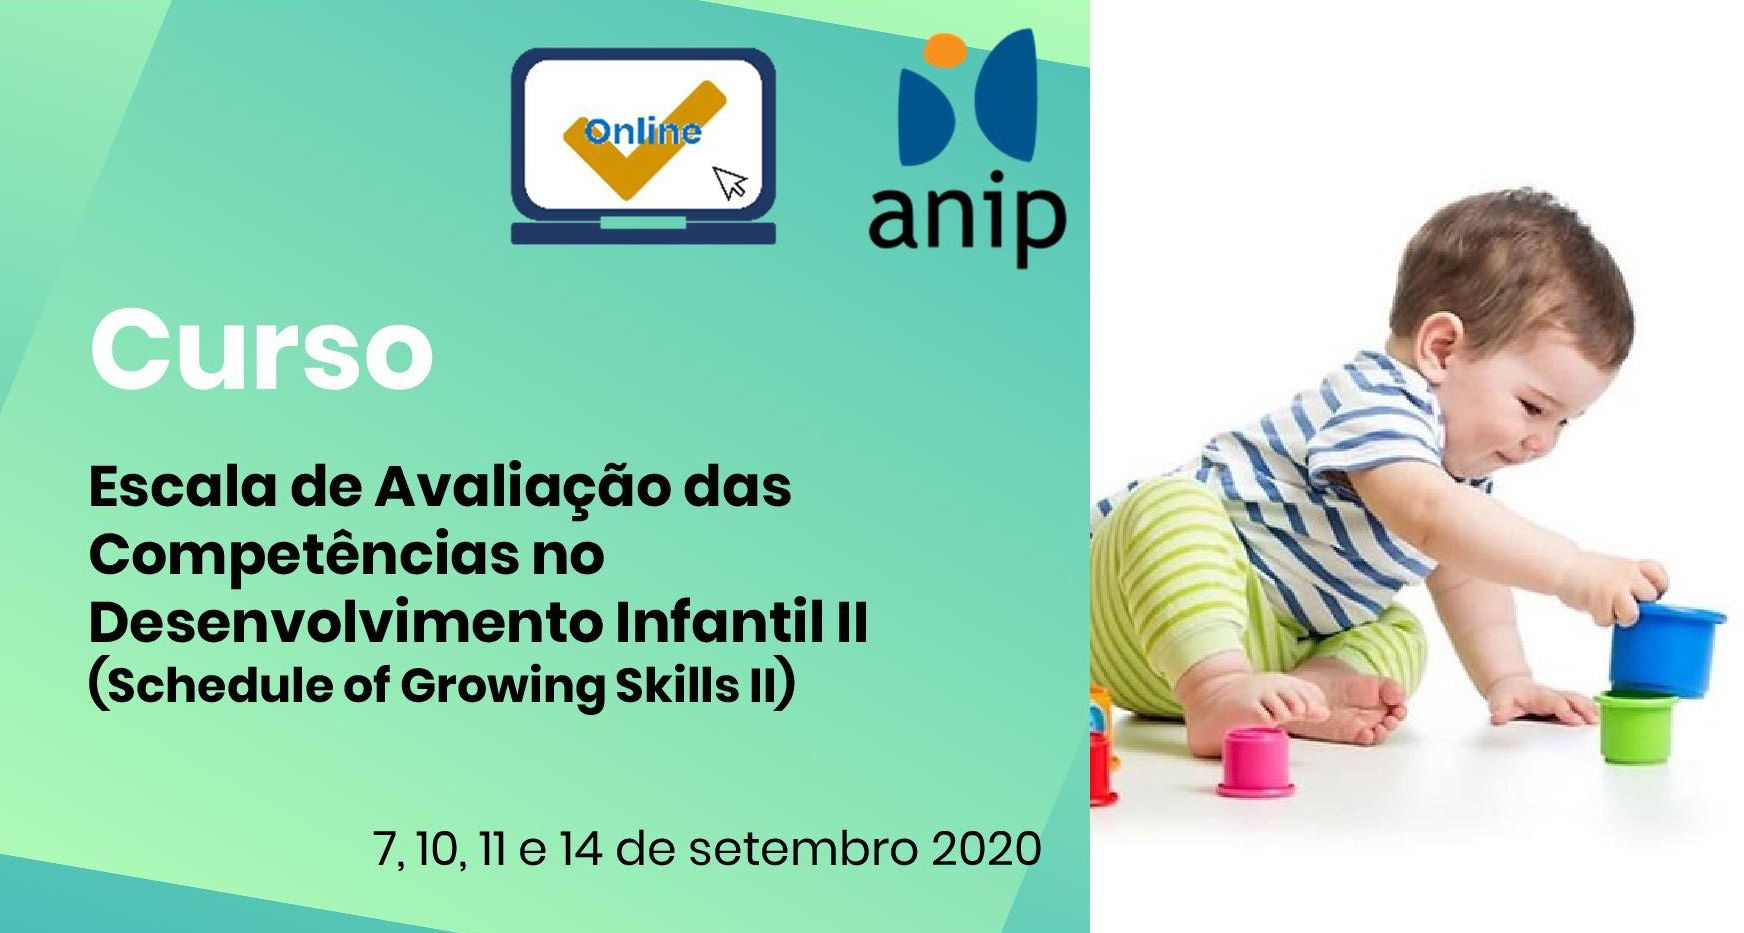 Escala de Avaliação Schedule of Growing Skills II (online)